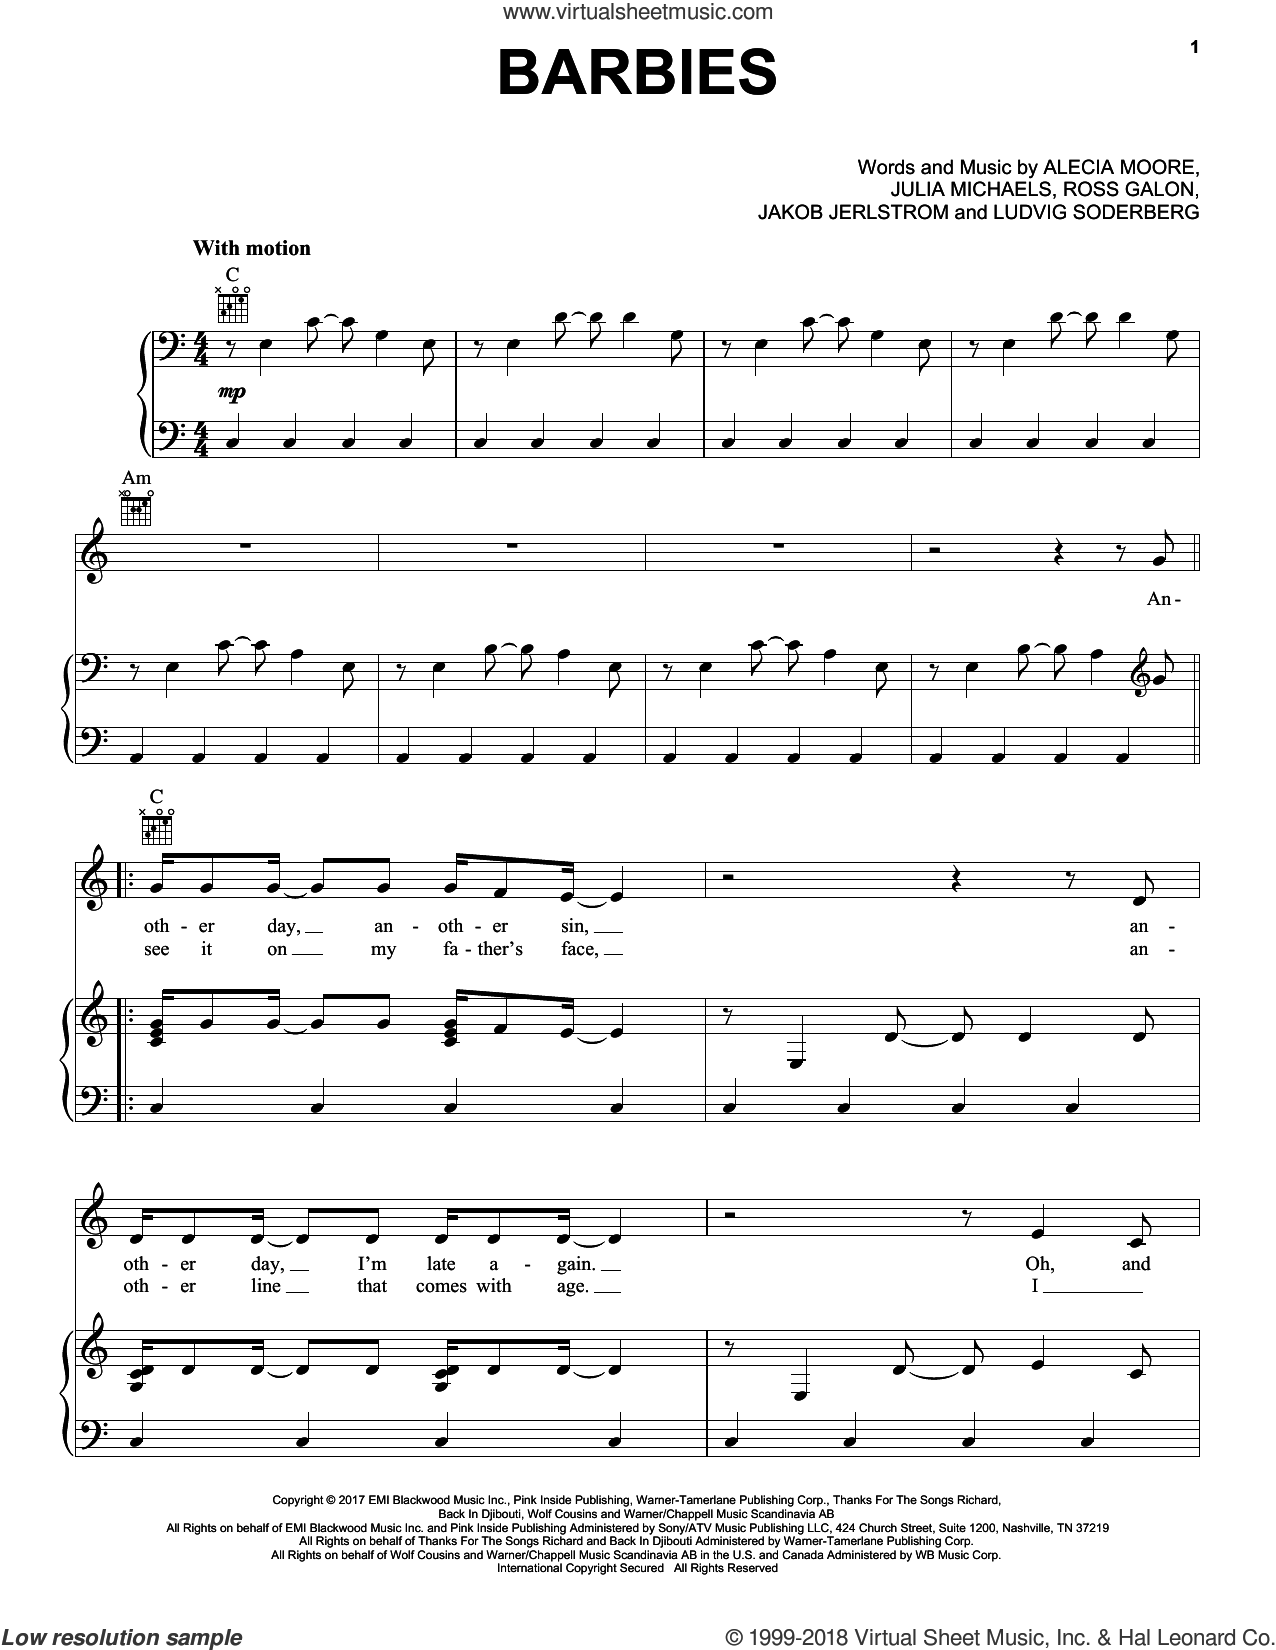 Barbies sheet music for voice, piano or guitar by Julia Michaels, Miscellaneous, Alecia Moore, Jakob Jerlstrom, Ludvig Soderberg and Ross Galon, intermediate skill level